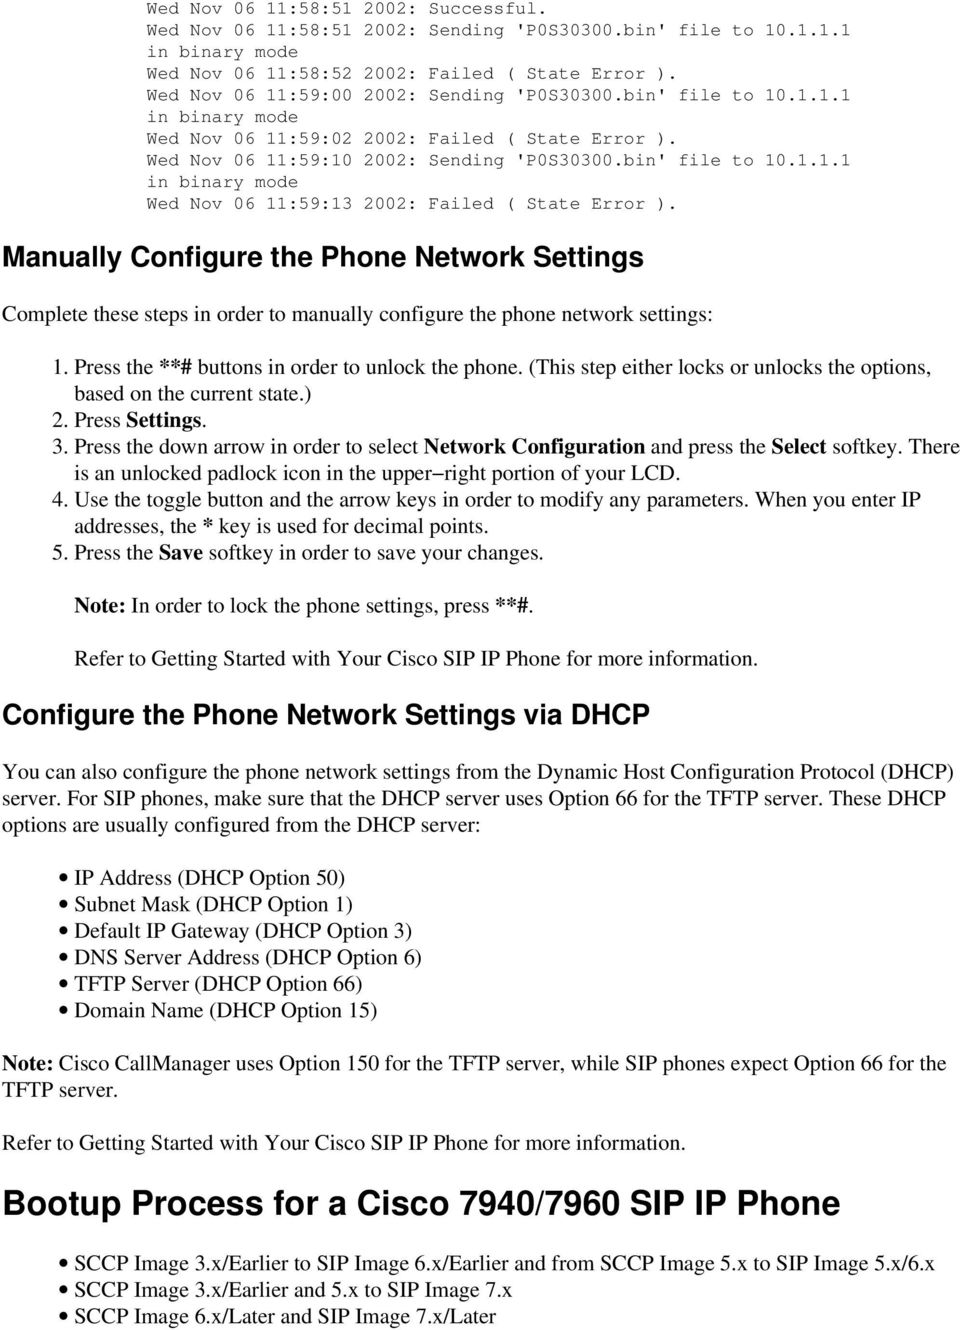 Converting a Cisco 7940/7960 SCCP Phone to a SIP Phone and the